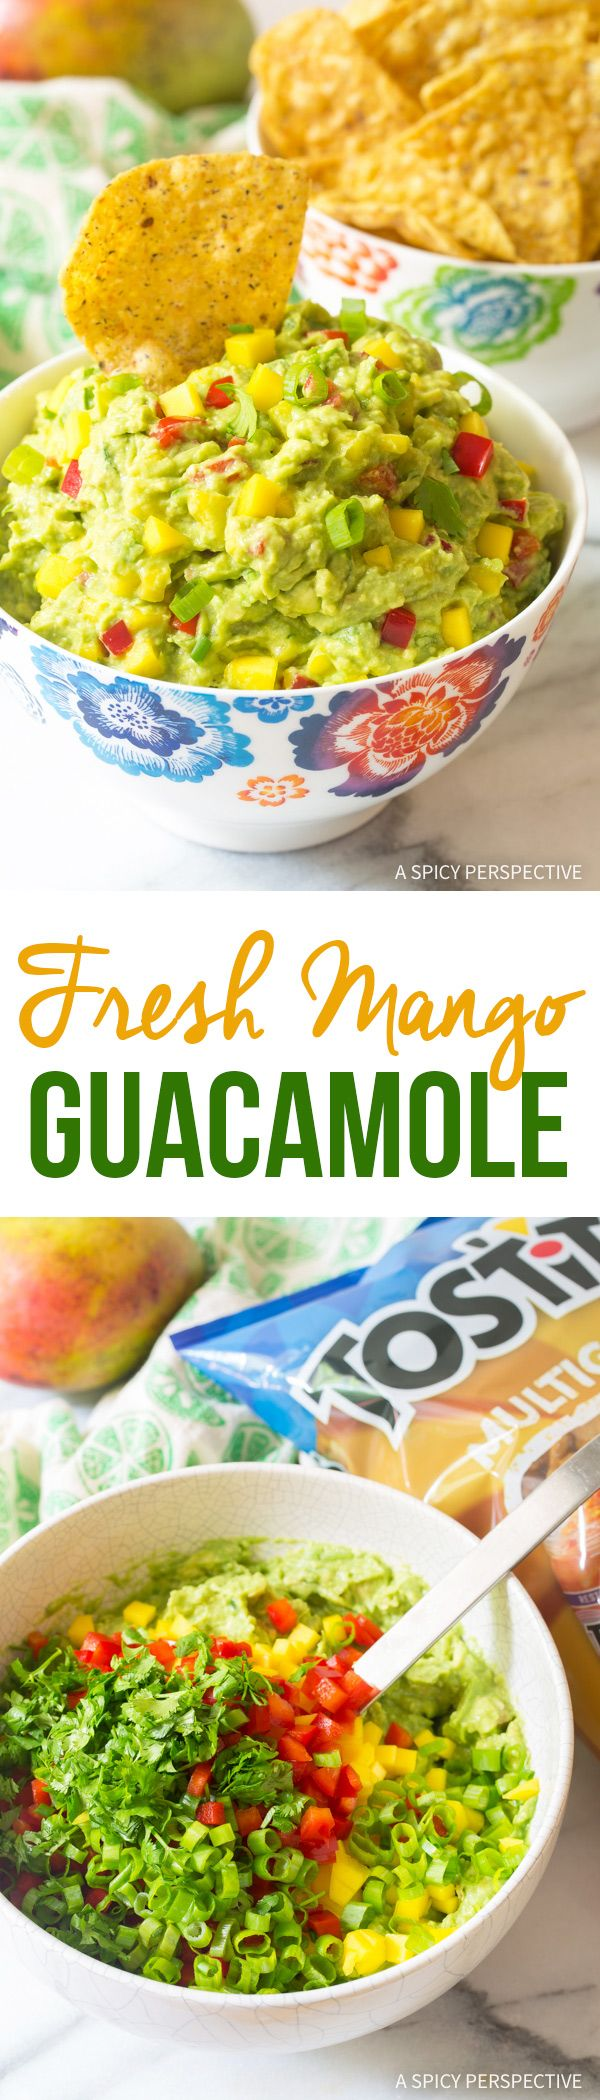 Spicy-Sweet Fresh Mango Guacamole Recipe - Try our favorite summer snack to take to the beach or lake. This Fresh Mango Guacamole Recipe is perfectly perky with spicy-sweet appeal. Try it with Multigrain Tostitos! @FritoLay @Tostitos #SayYesToSummer #ad